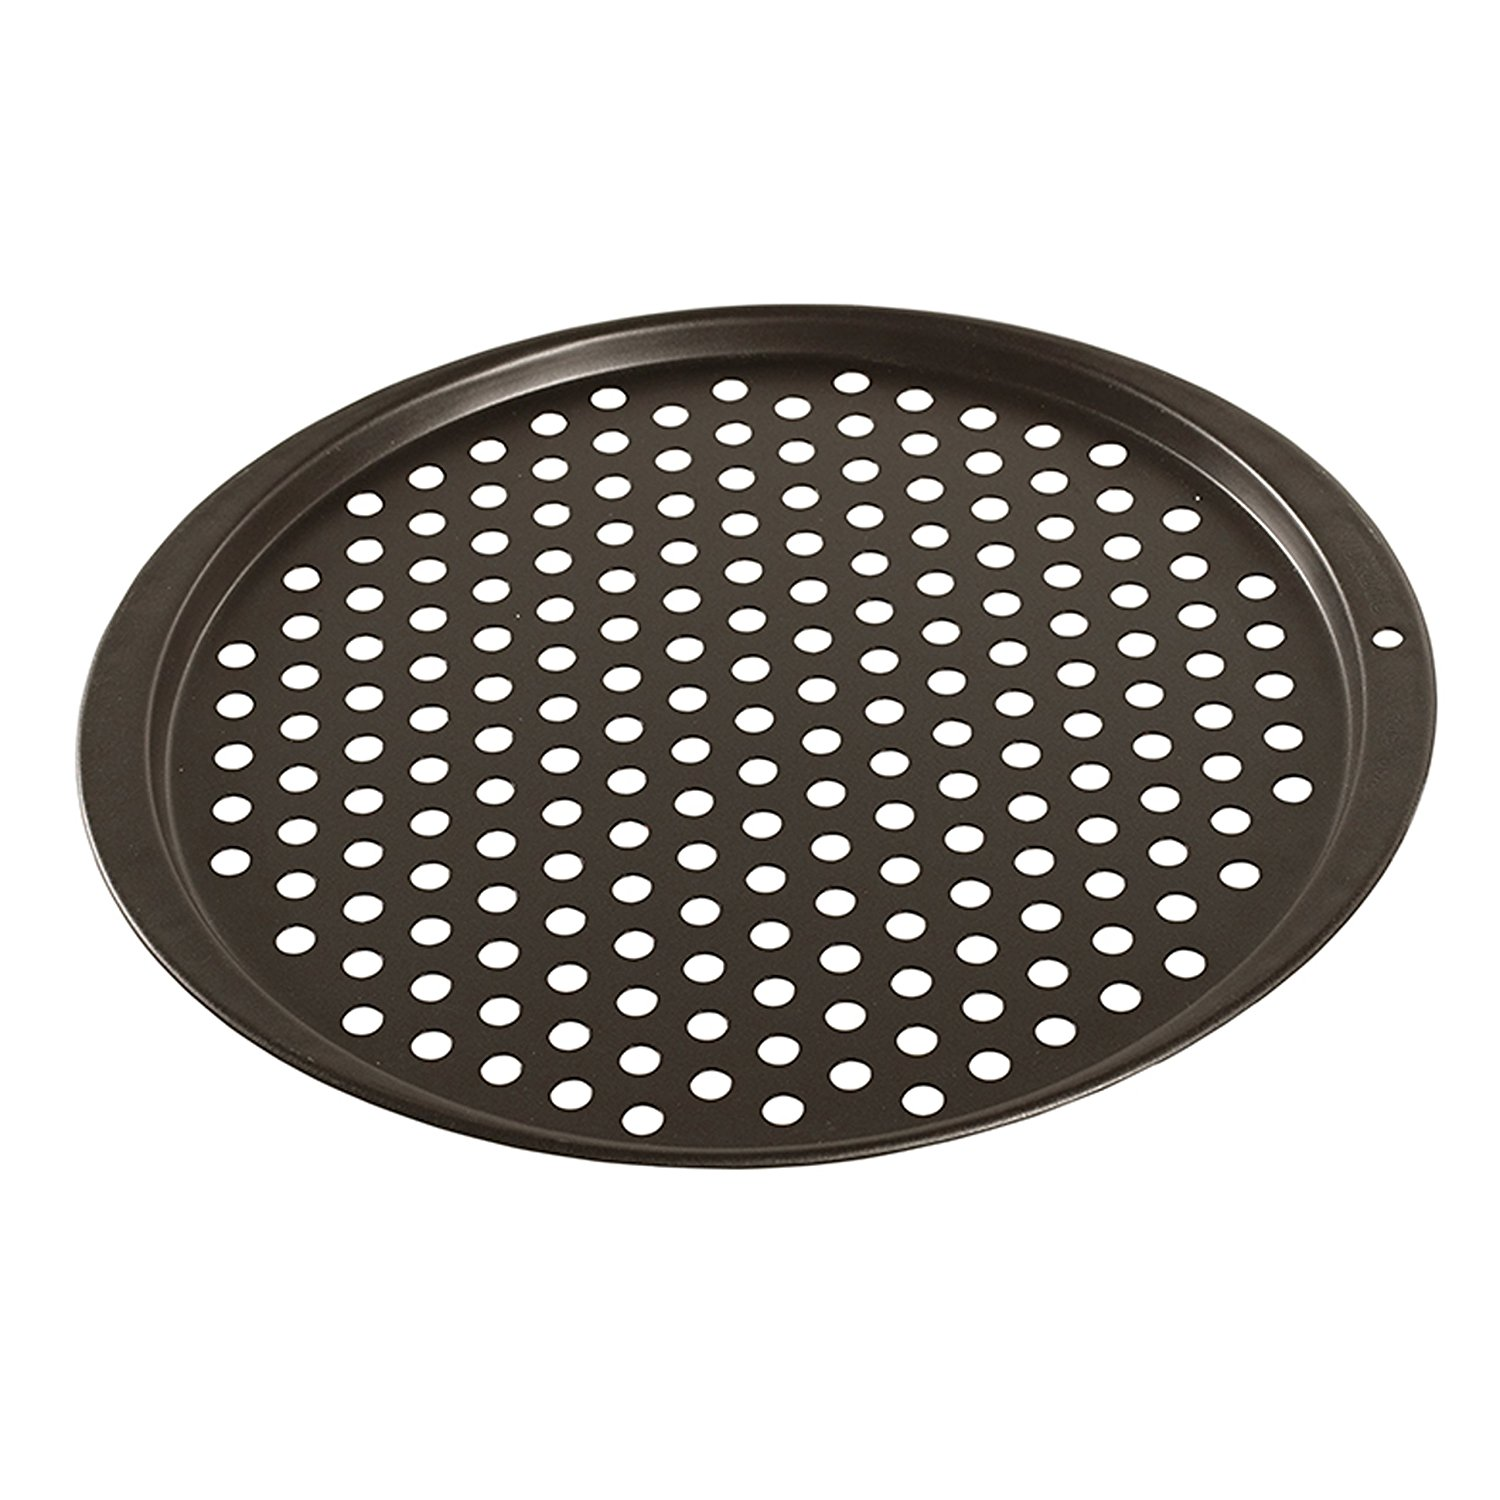 365 Indoor Outdoor Large Pizza Pan, 12-Inch, Fast shipping,Brand Nordic Ware by